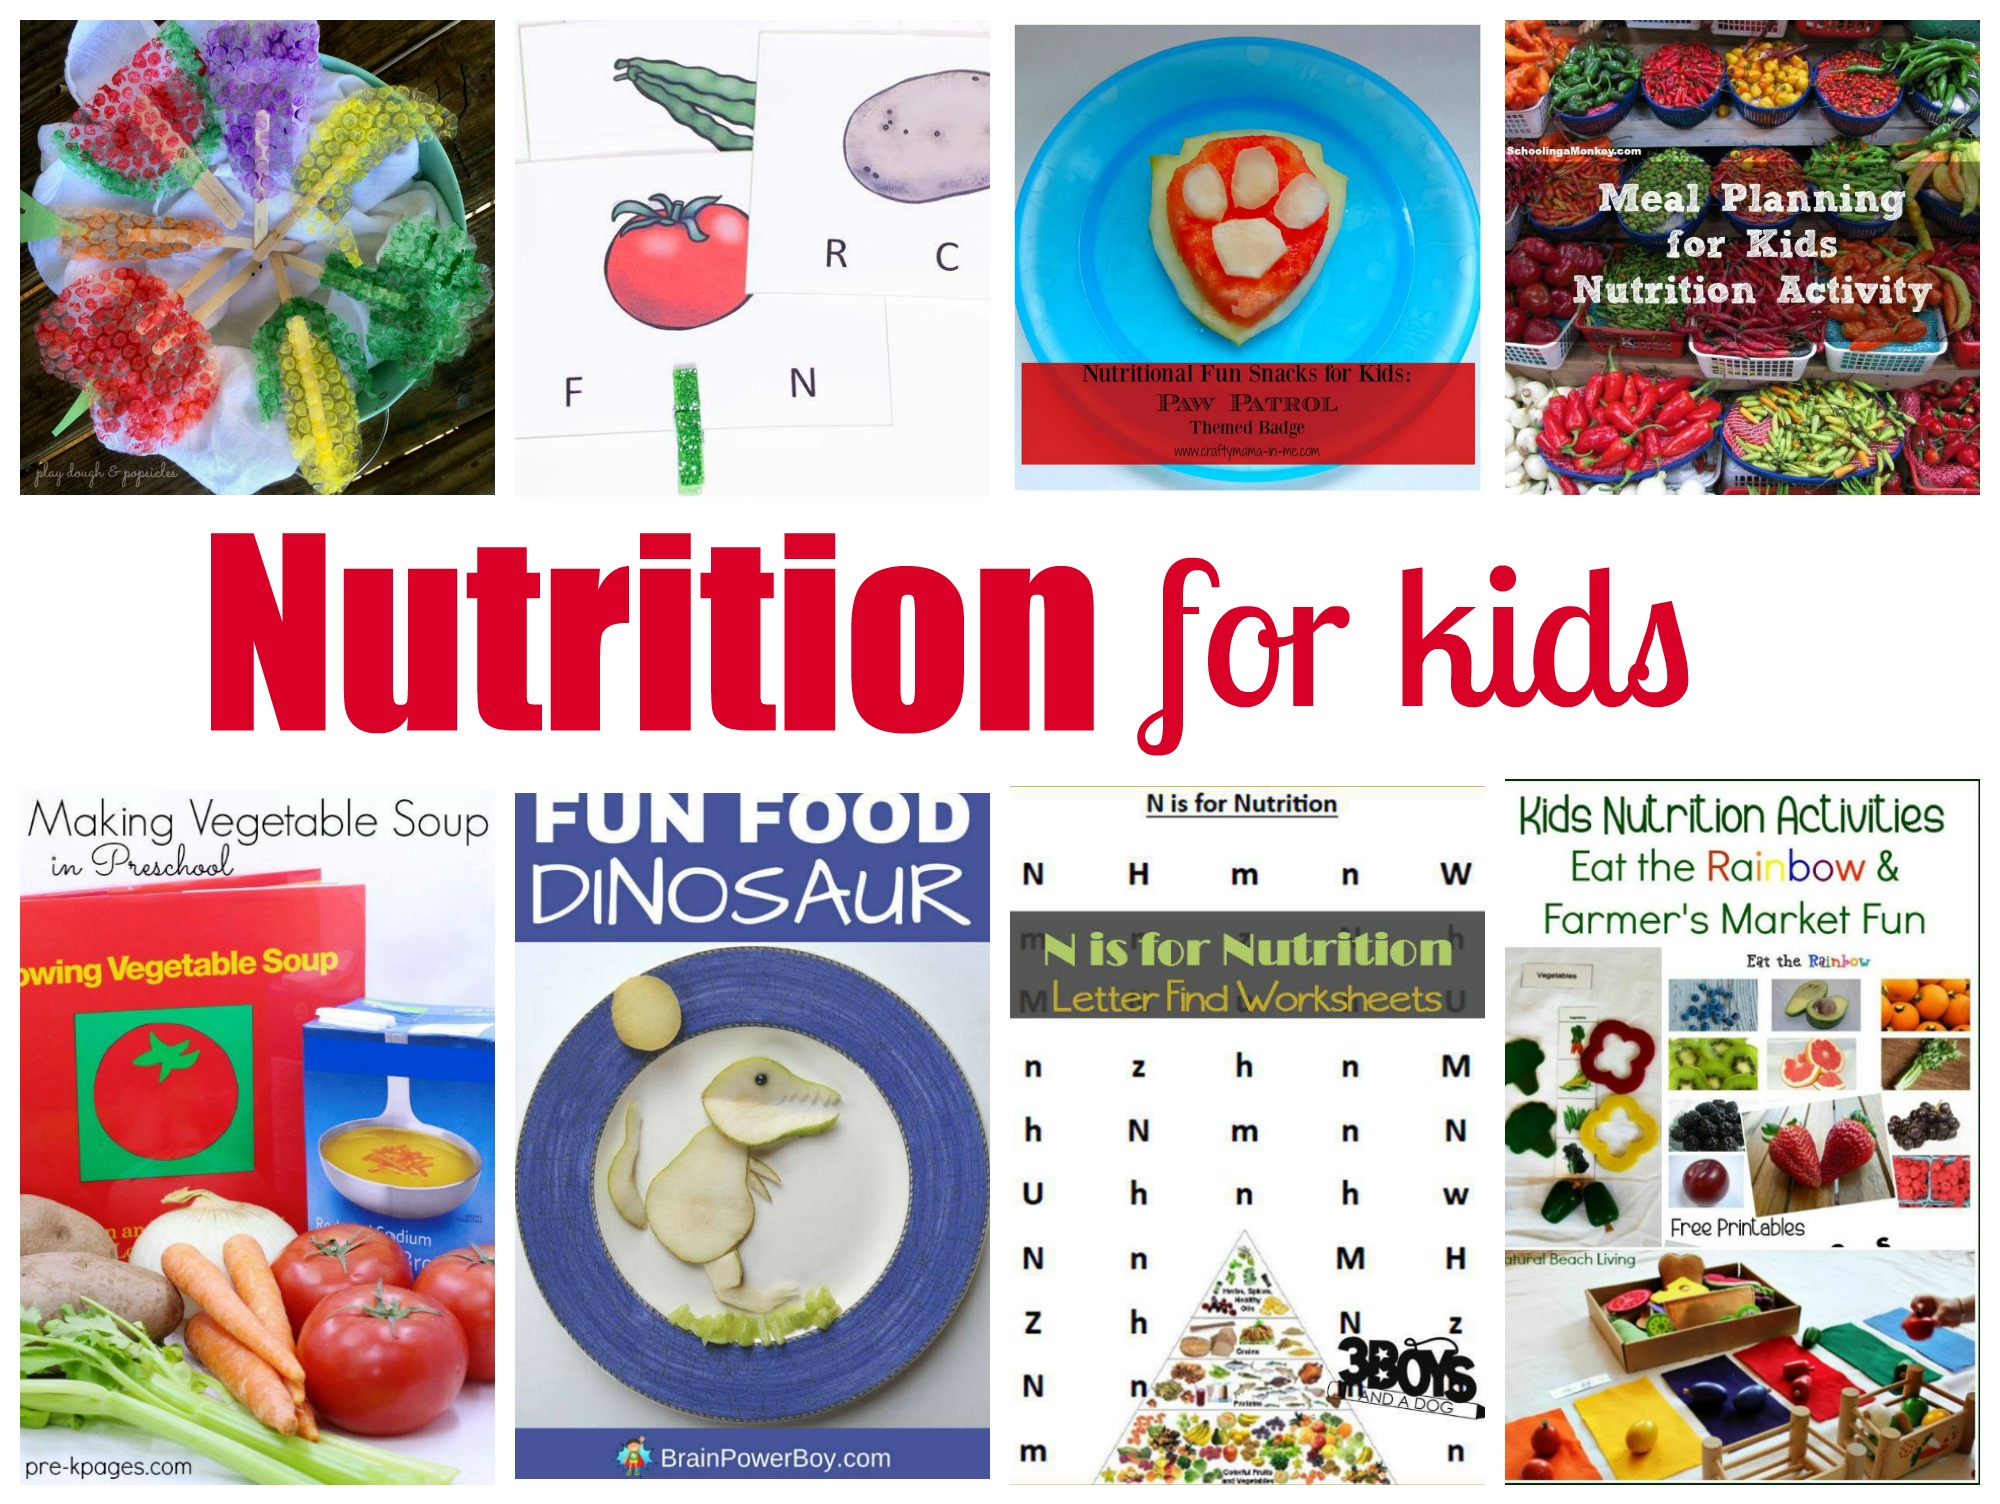 Kids Nutrition Activities Farmer S Market Healthy Eating Ideas